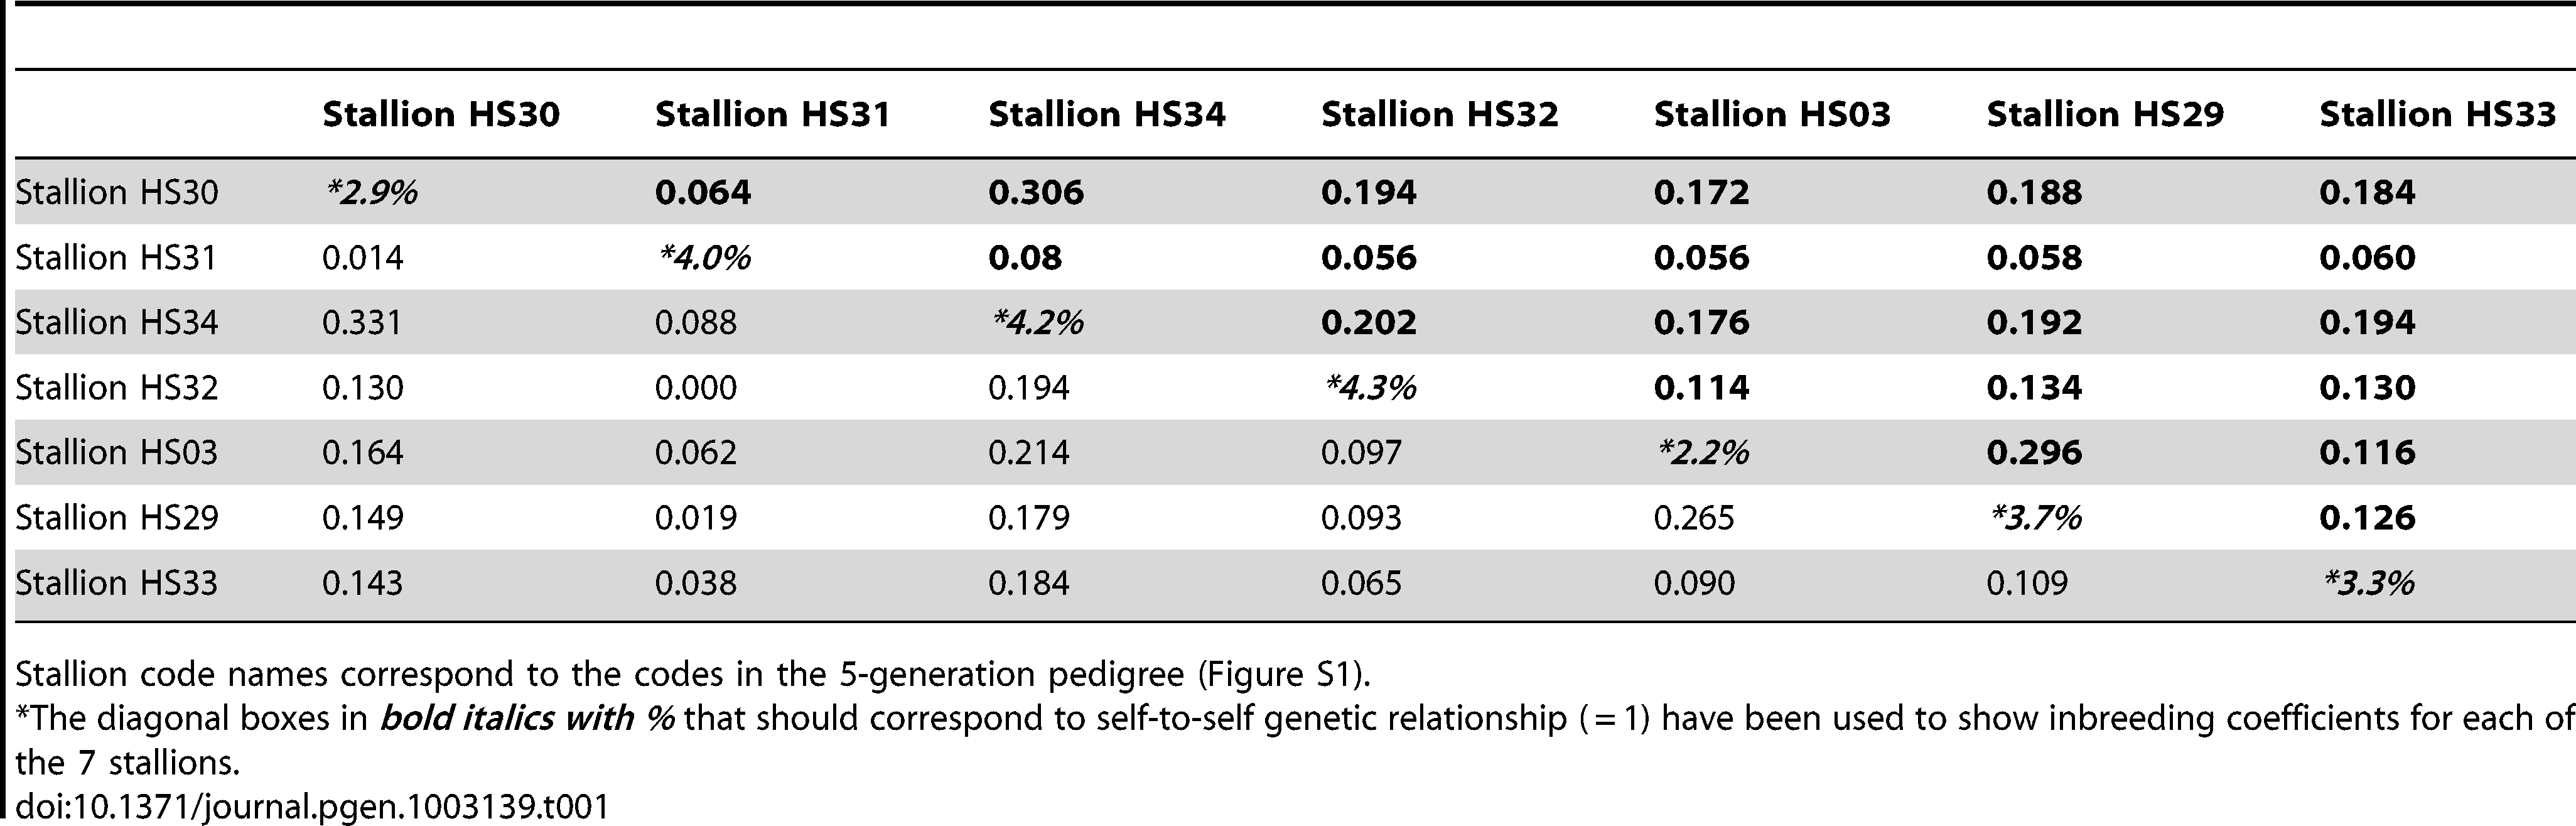 Inbreeding coefficients (diagonal boxes) and genetic relationship coefficients of and among the seven affected stallions calculated from i) pedigree data in bold (upper triangle of the matrix) and from ii) SNP genotyping data in normal font (lower triangle of the matrix).